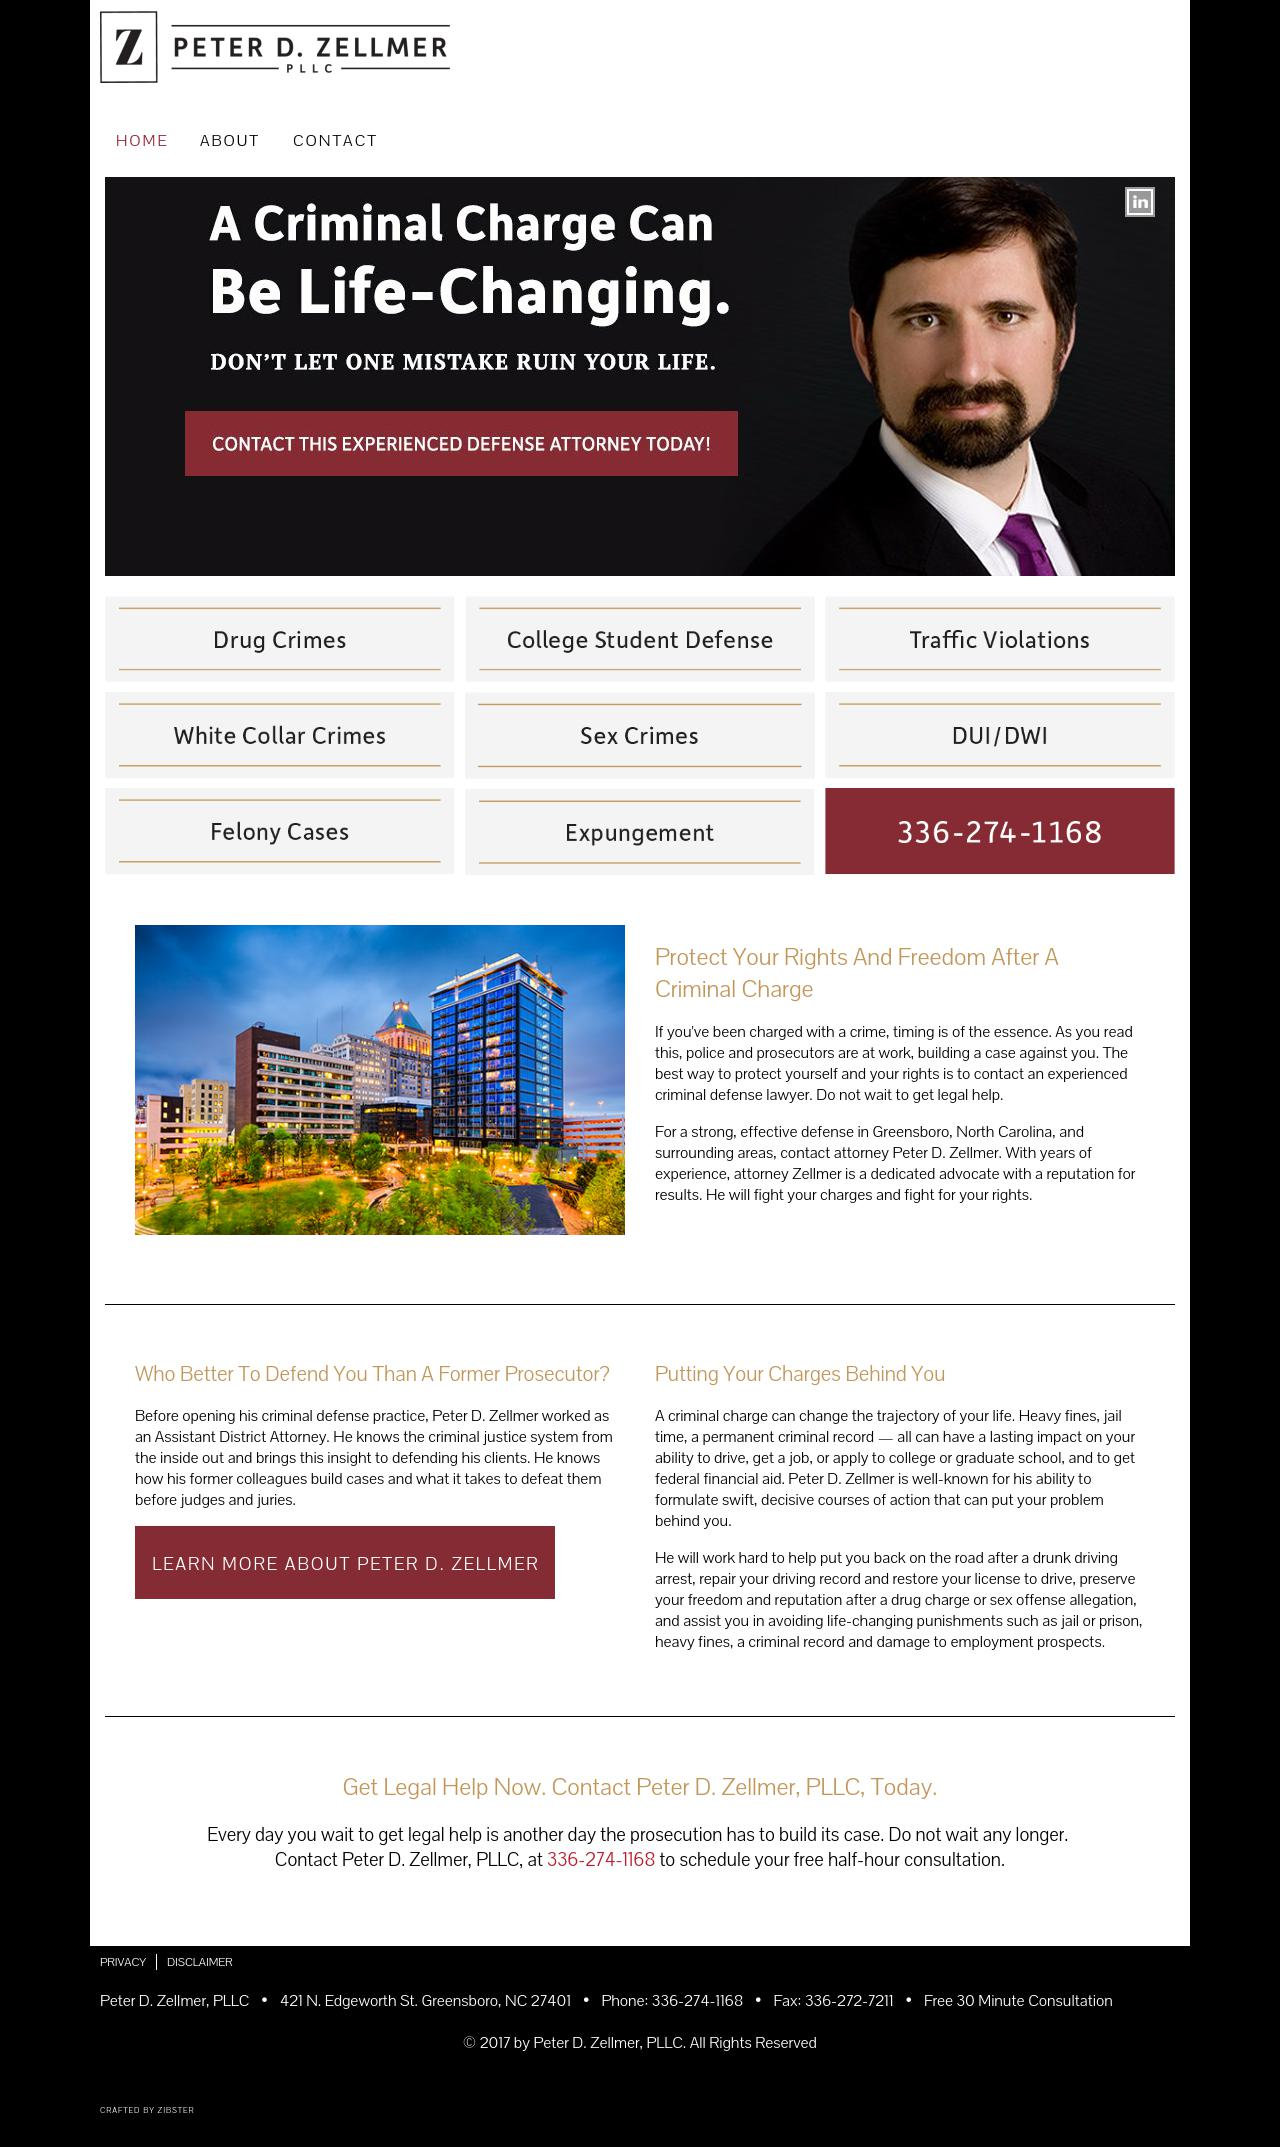 Peter D  Zellmer, PLLC | Greensboro NC Law | LawyerLand